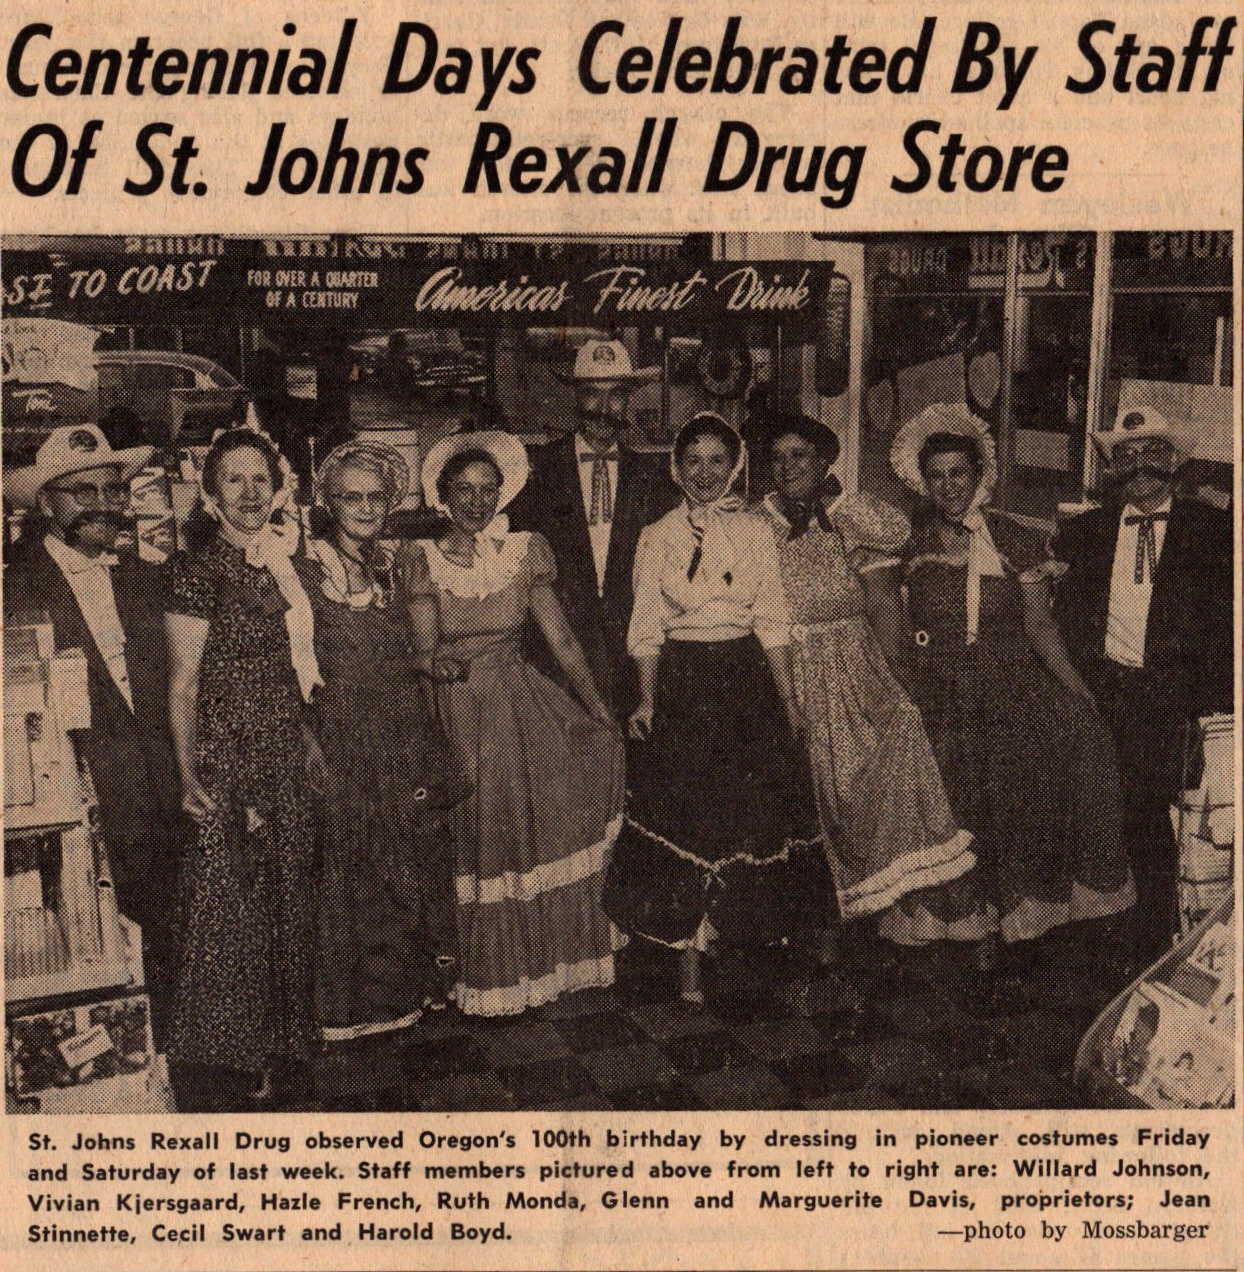 Feb 1959 St Johns Rexall 8501 N Jersey staff Centinnial Days